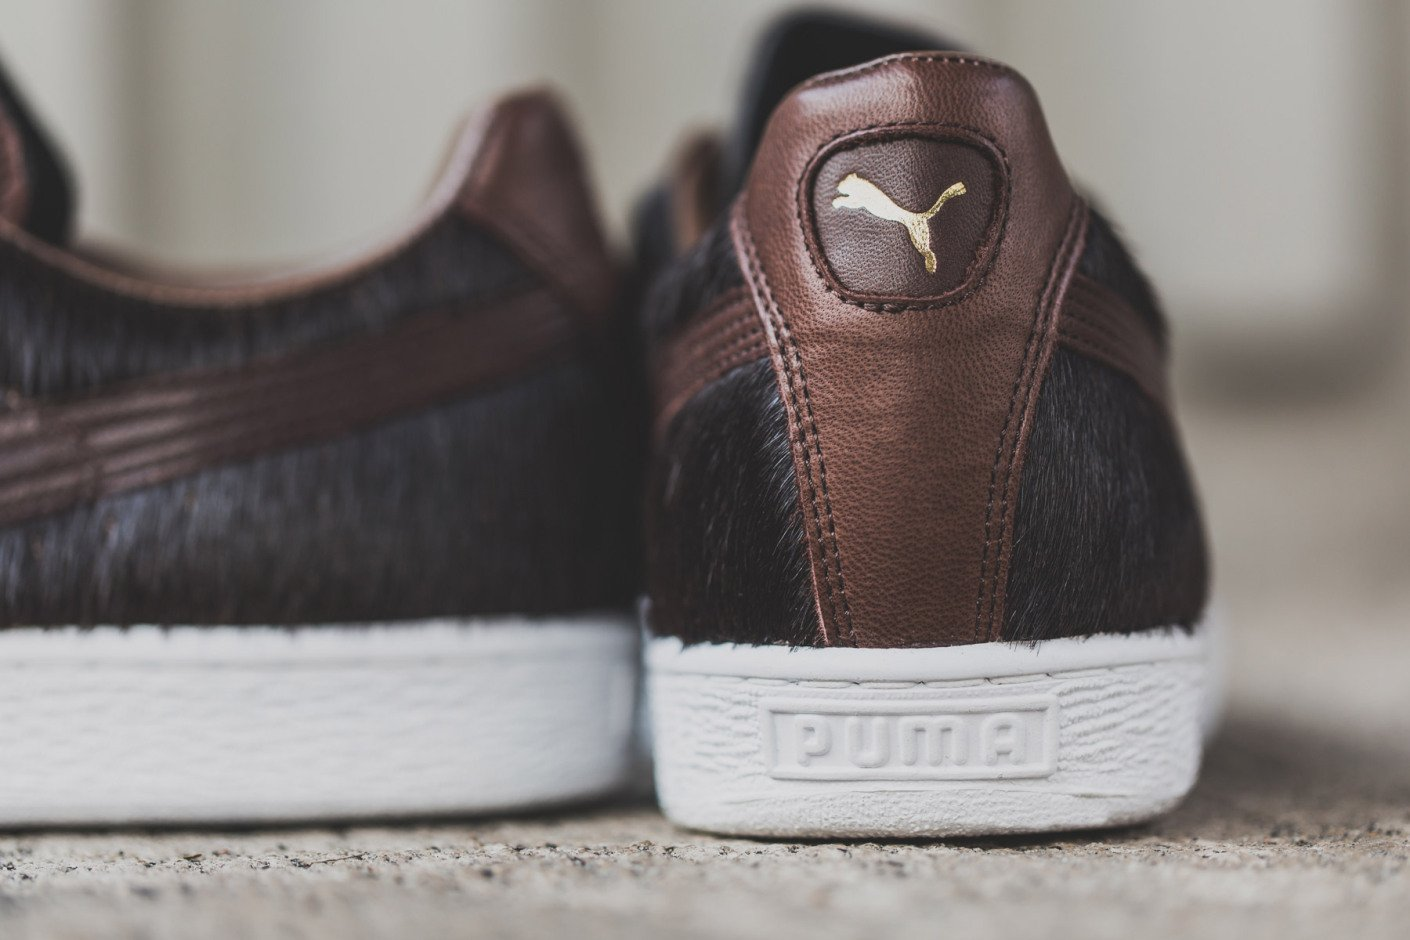 puma-takumi-year-of-the-horse-spring-2014-collection-6